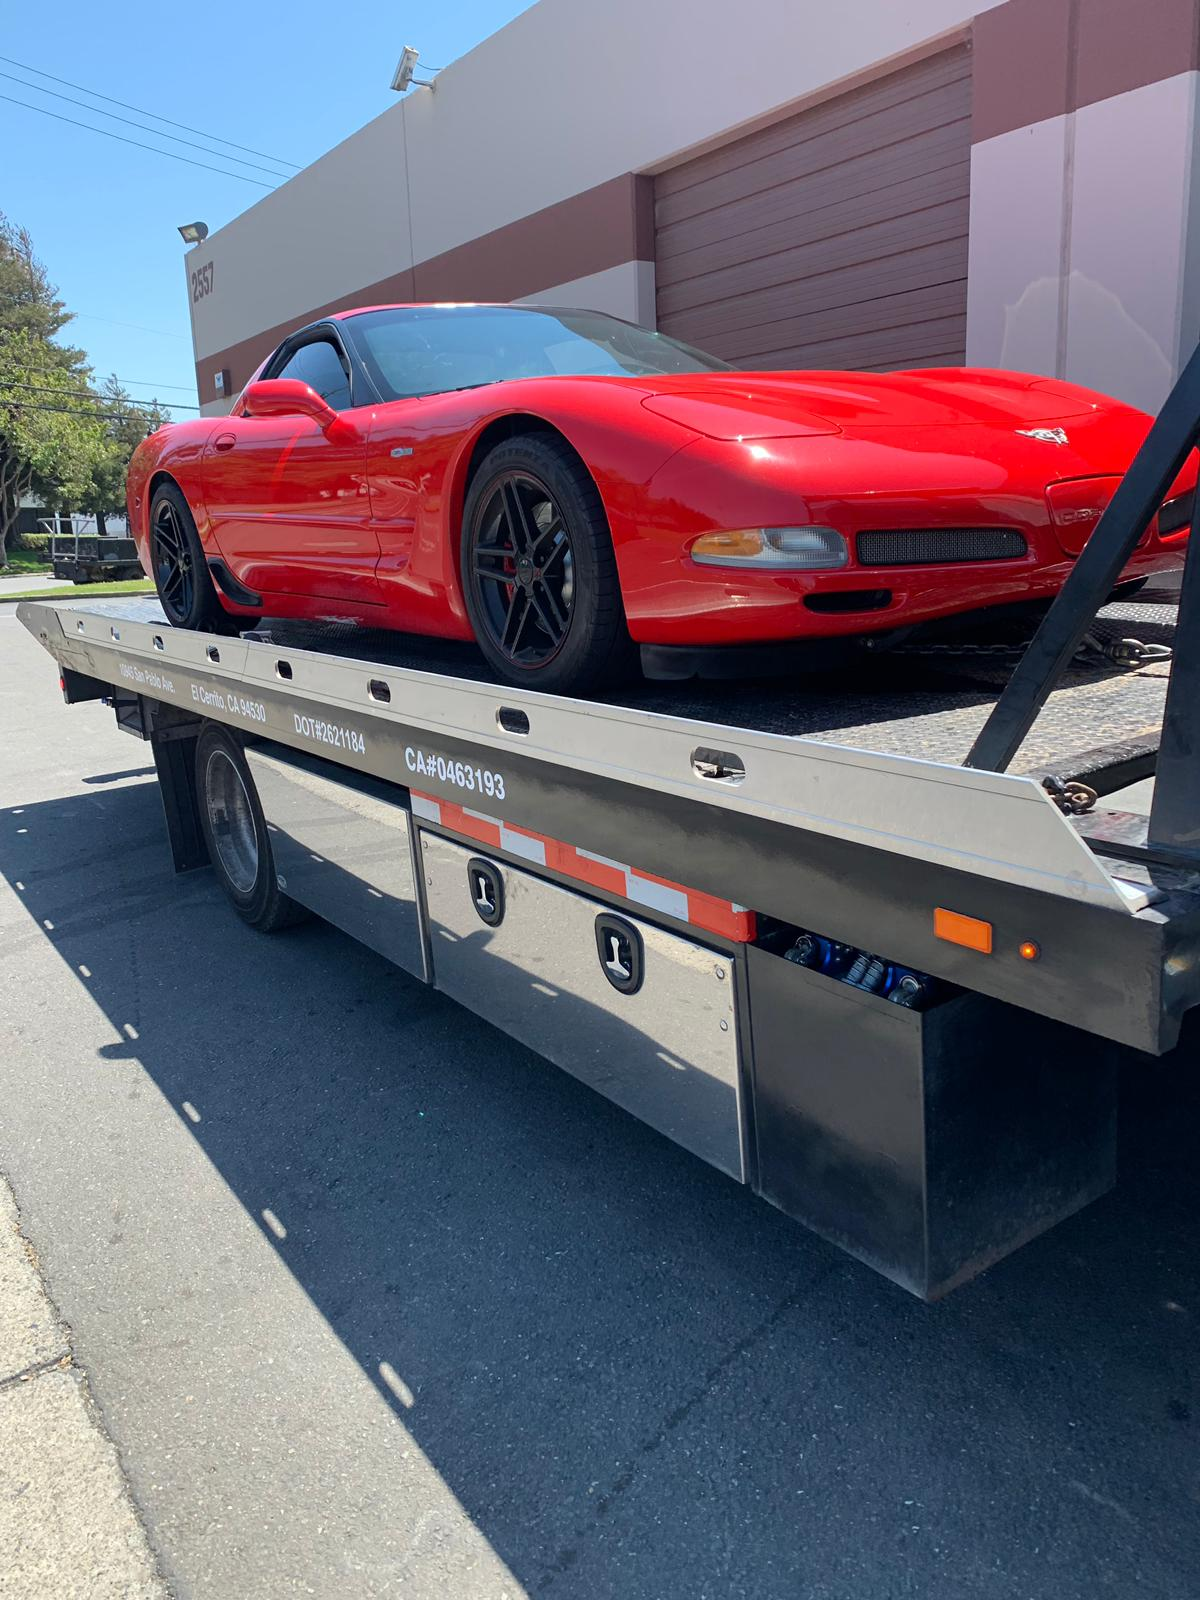 Luxury Red Car Towing